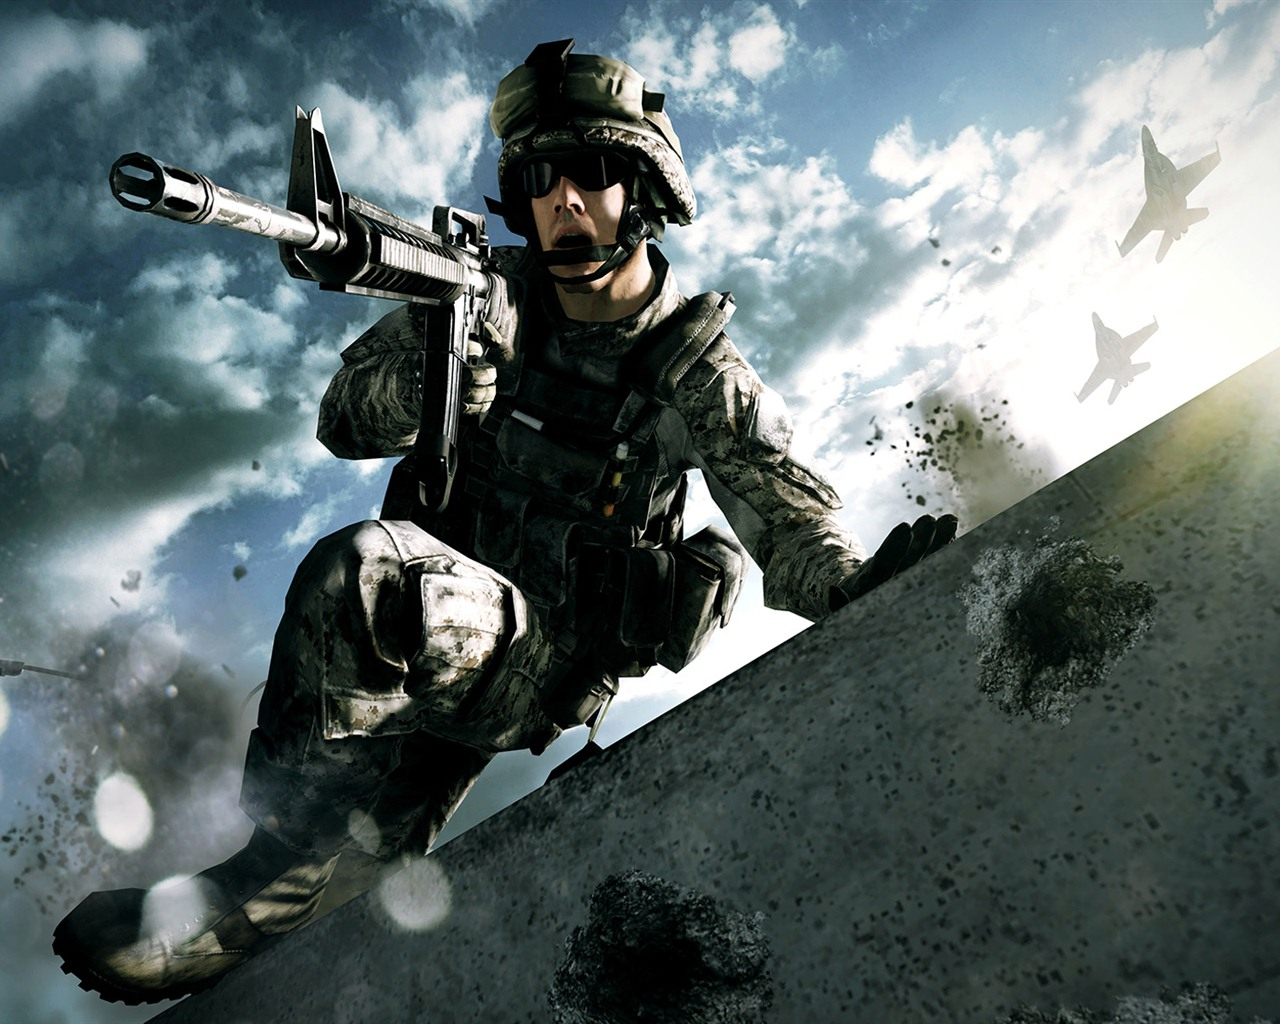 Battlefield 3 HD Wallpapers 7